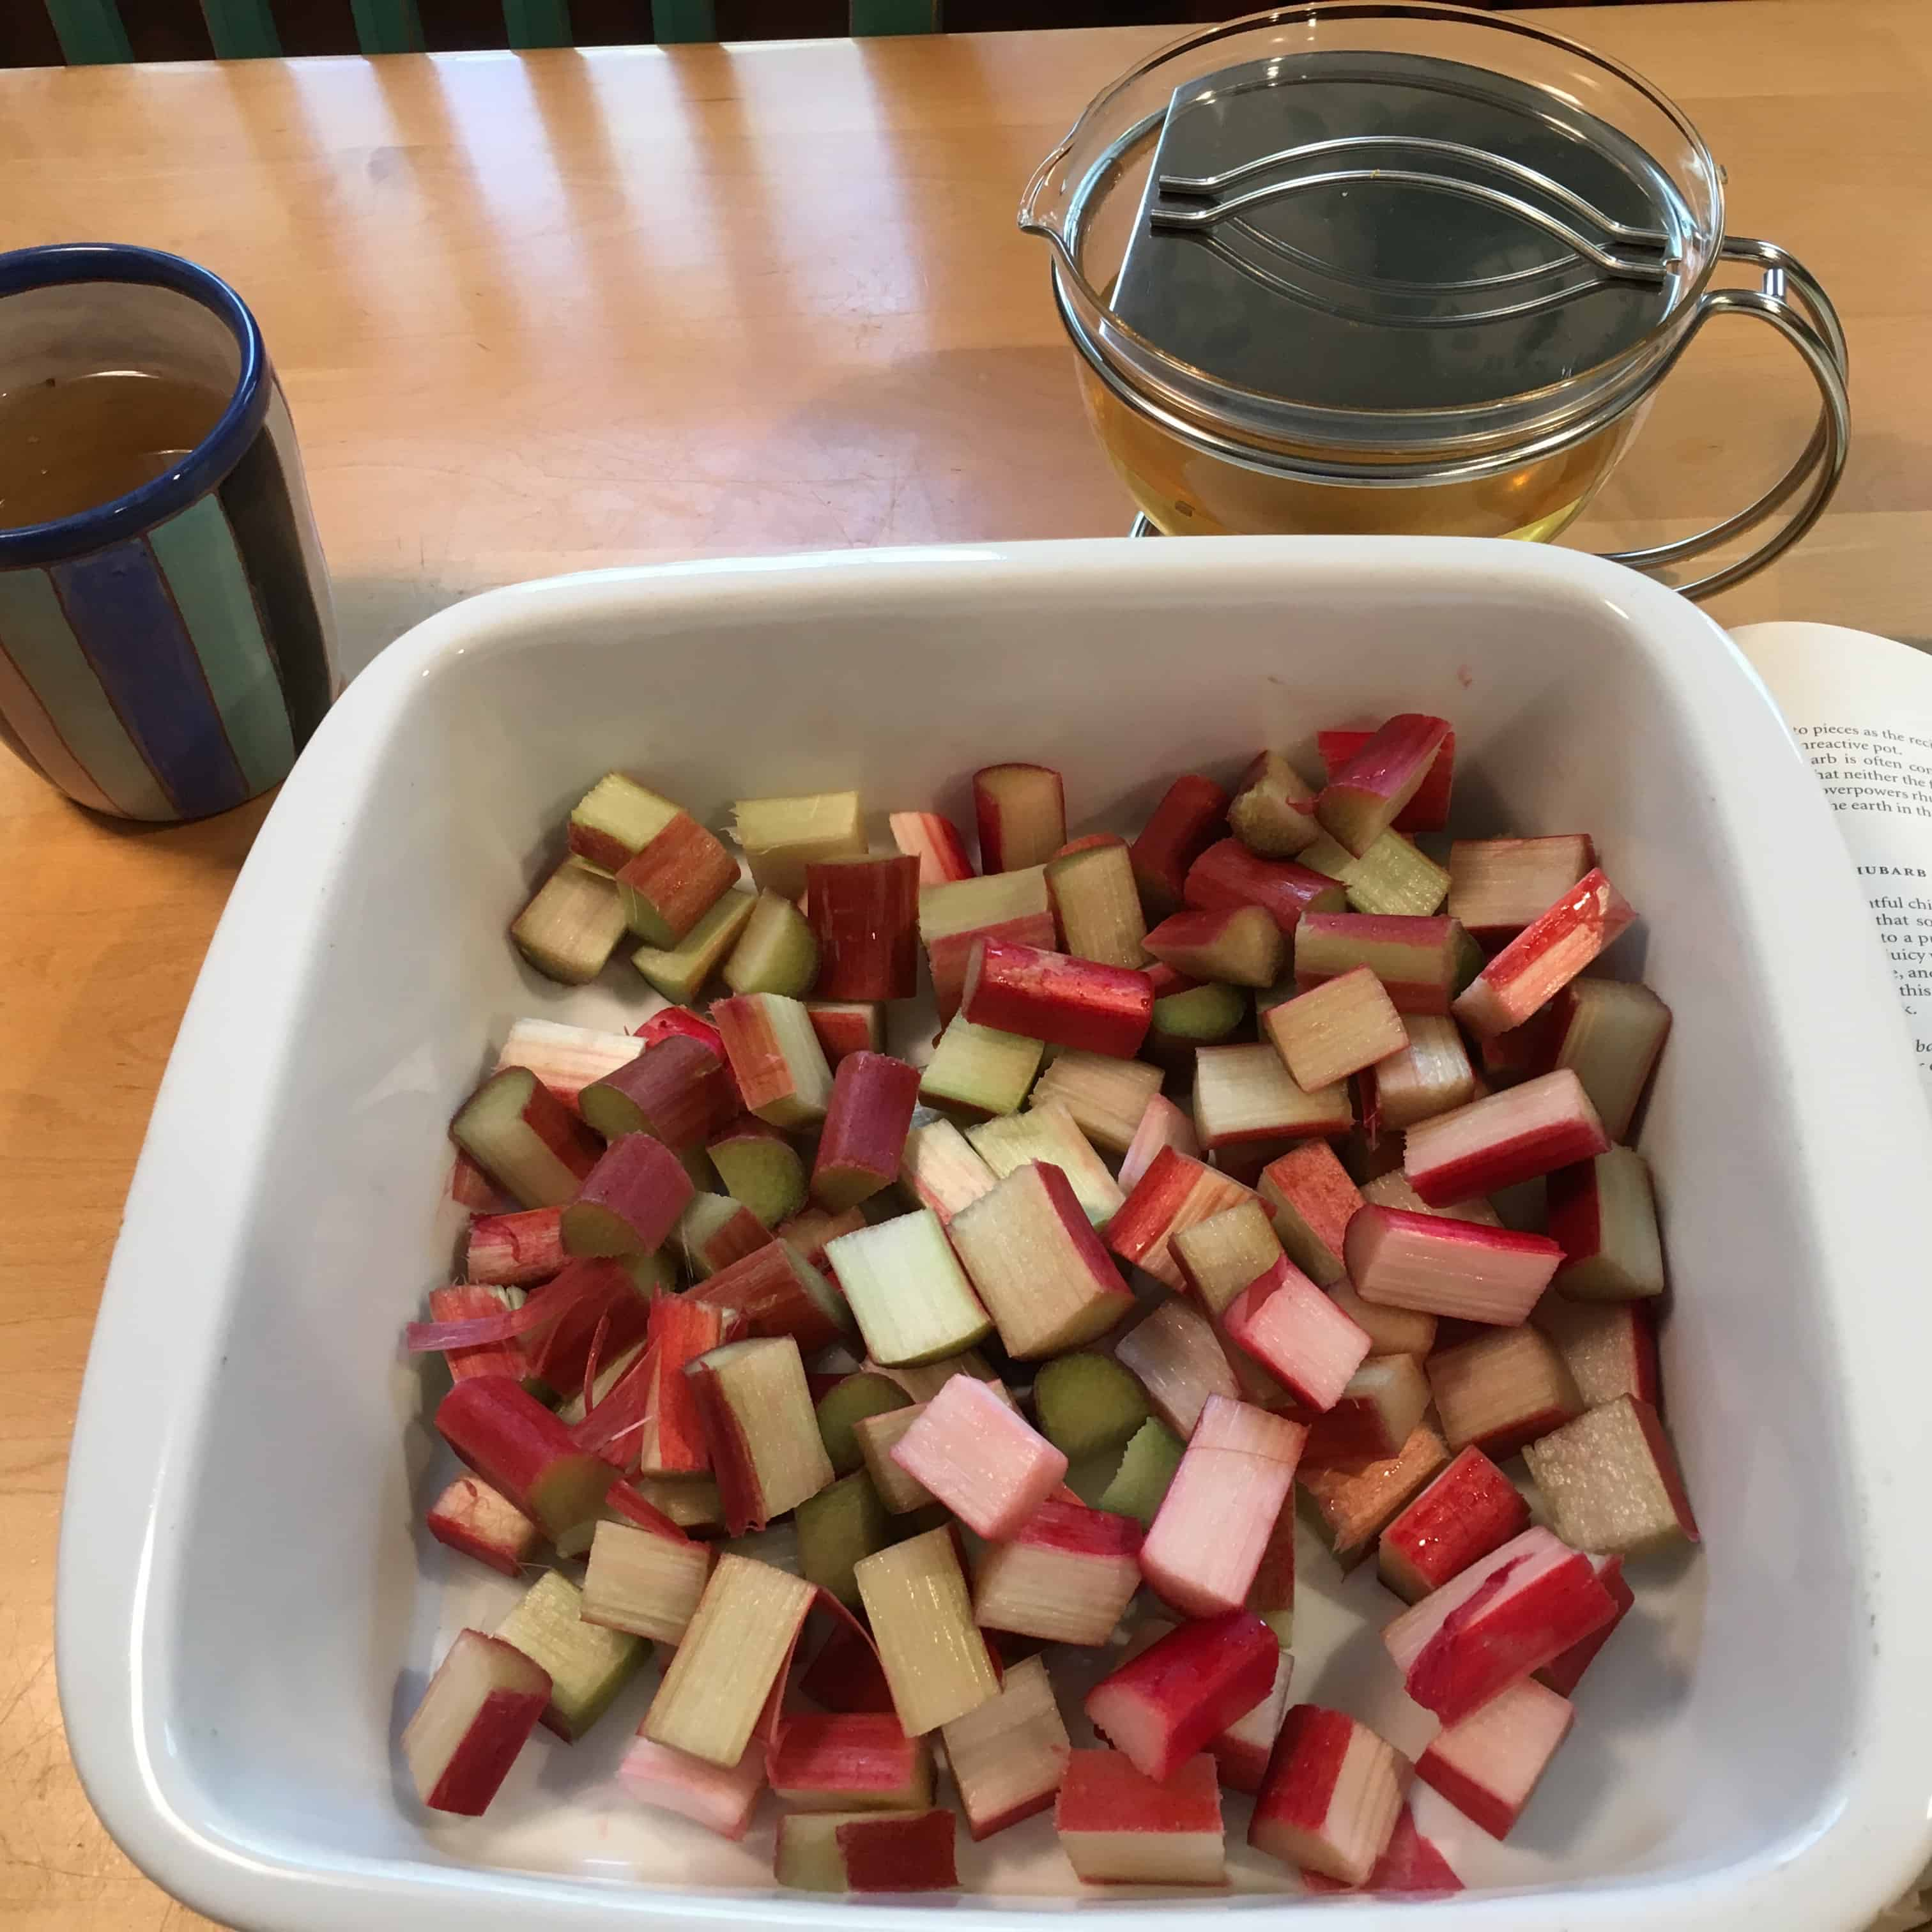 Rhubarb should always be cooked in a nonreactive pot or dish.